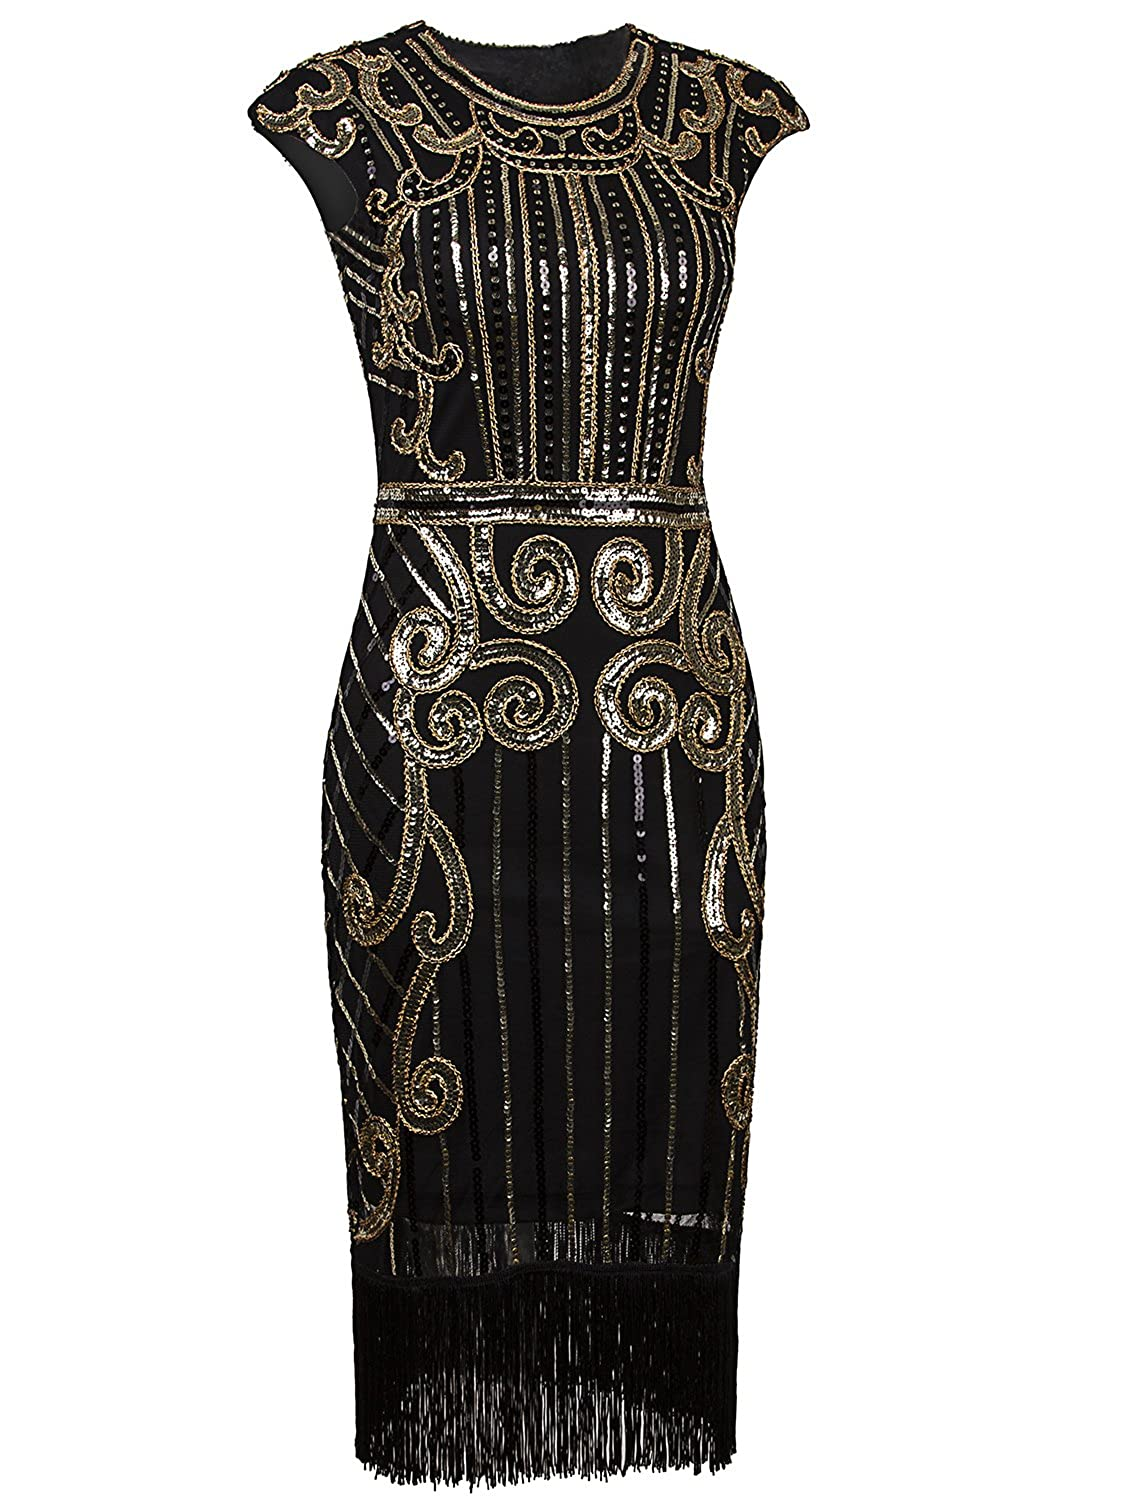 Black Flapper Dresses, 1920s Black Dresses Vijiv 1920s Vintage Inspired Sequin Embellished Fringe Long Gatsby Flapper Dress $33.99 AT vintagedancer.com